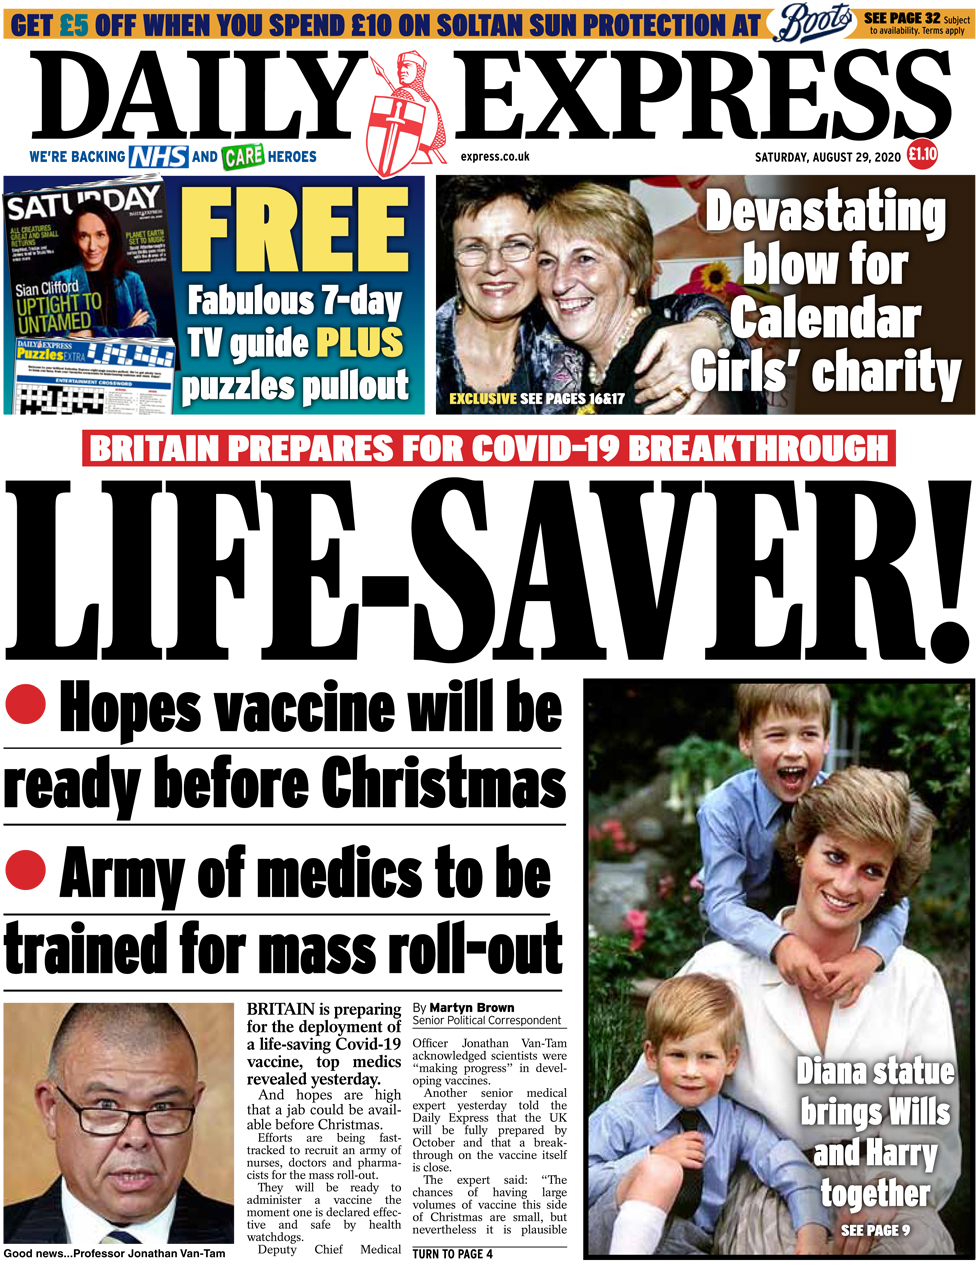 The Daily Express front page 29 August 2020